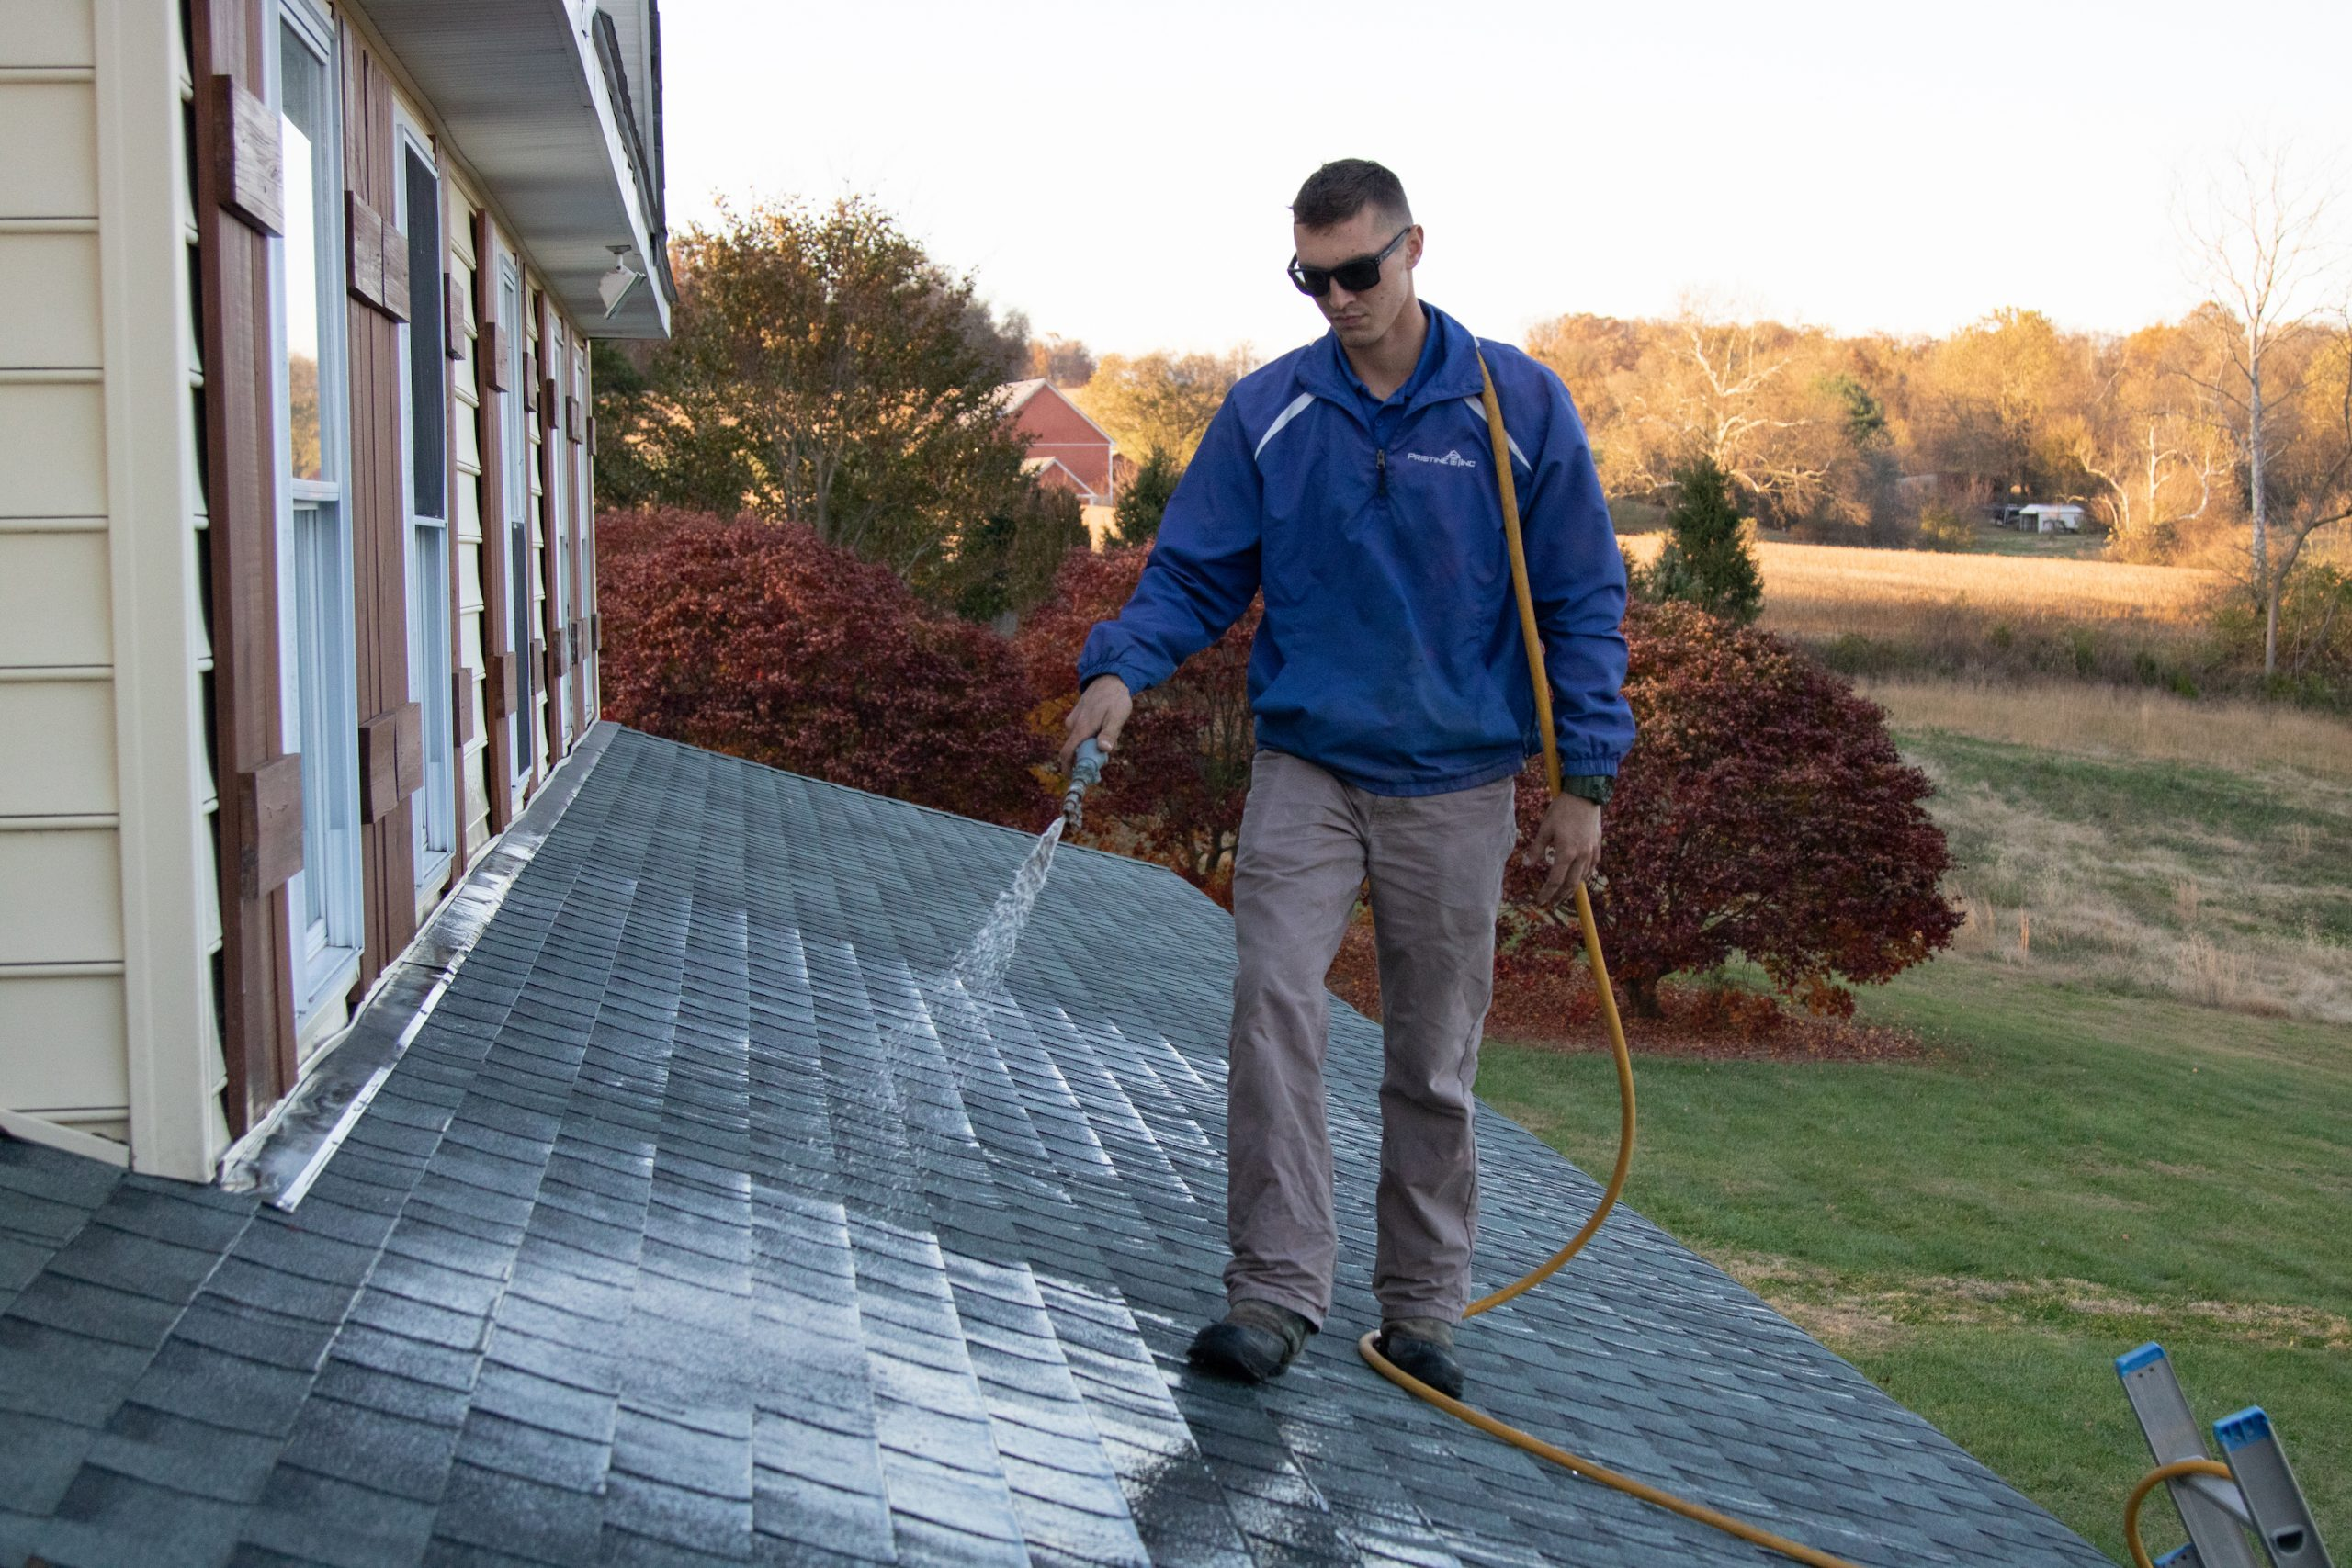 EXTEND THE LIFE OF YOUR ROOF WITH A ROOF WASH